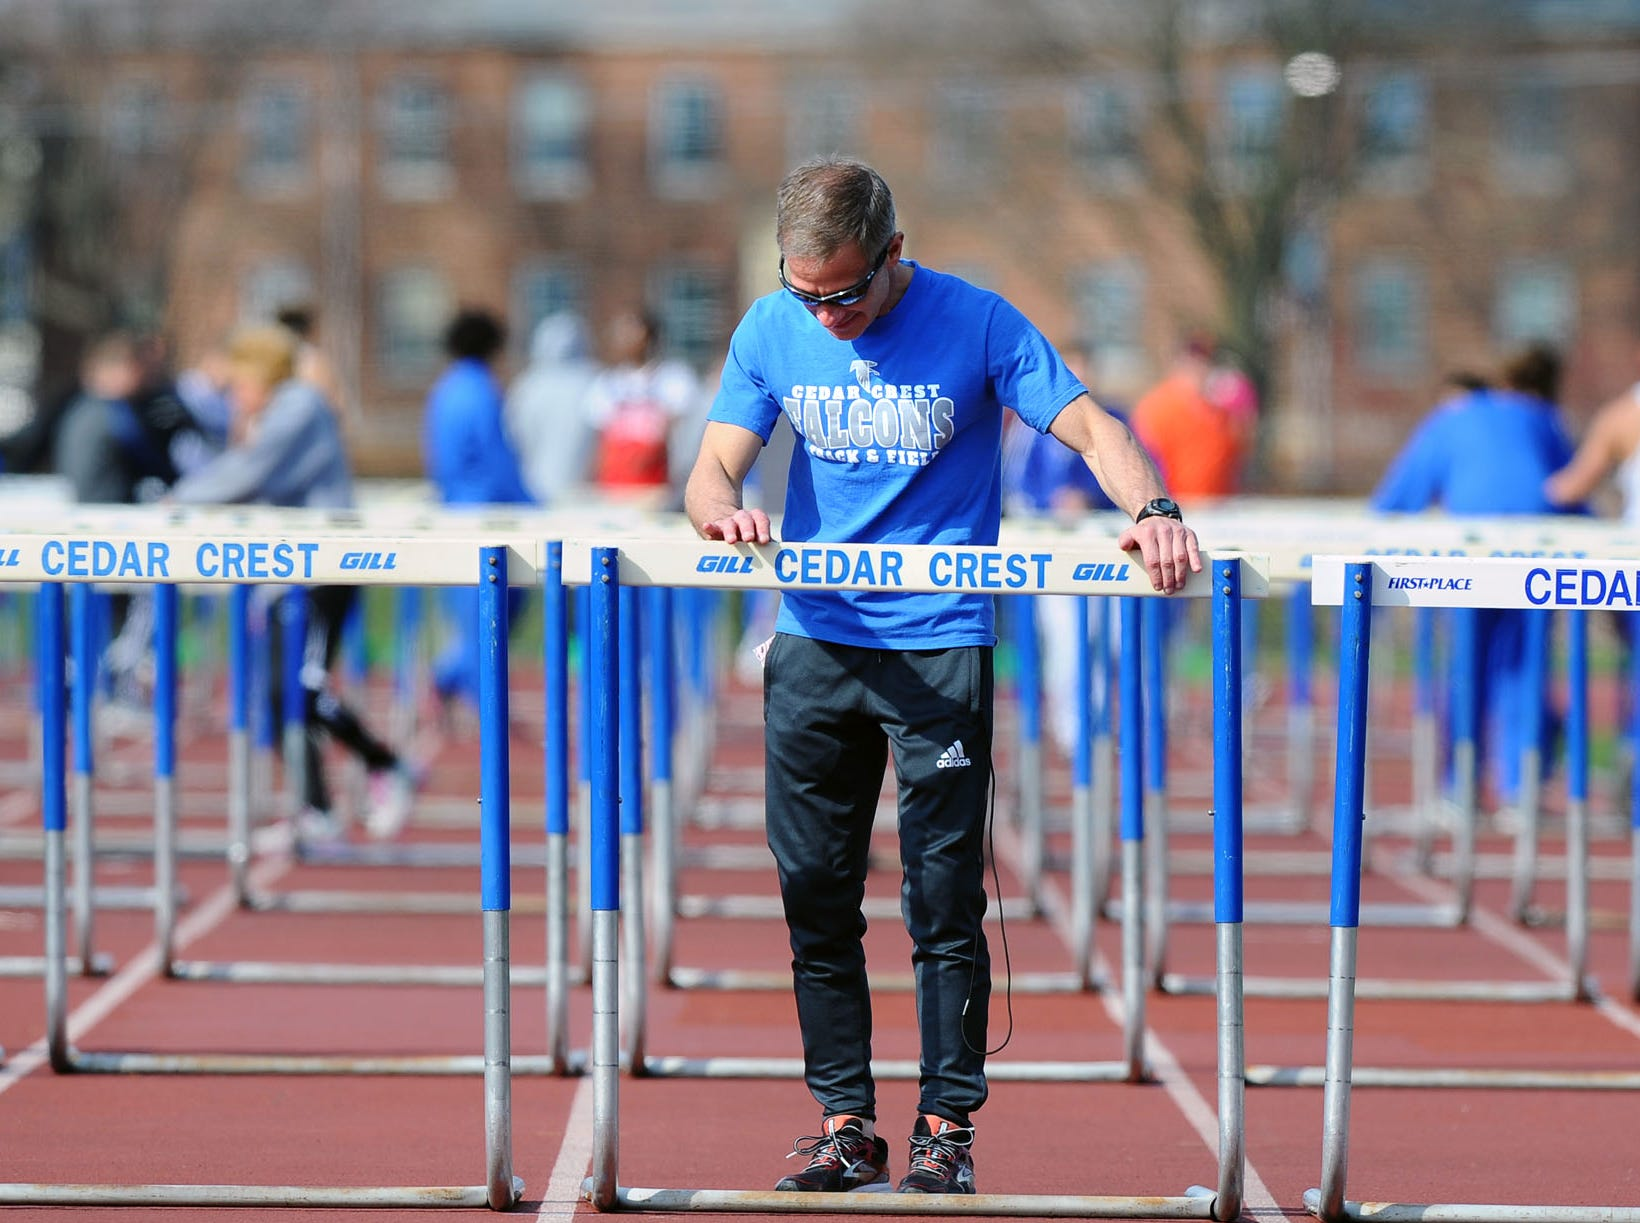 Rob Bare adjusting the hurdles prior to a race.